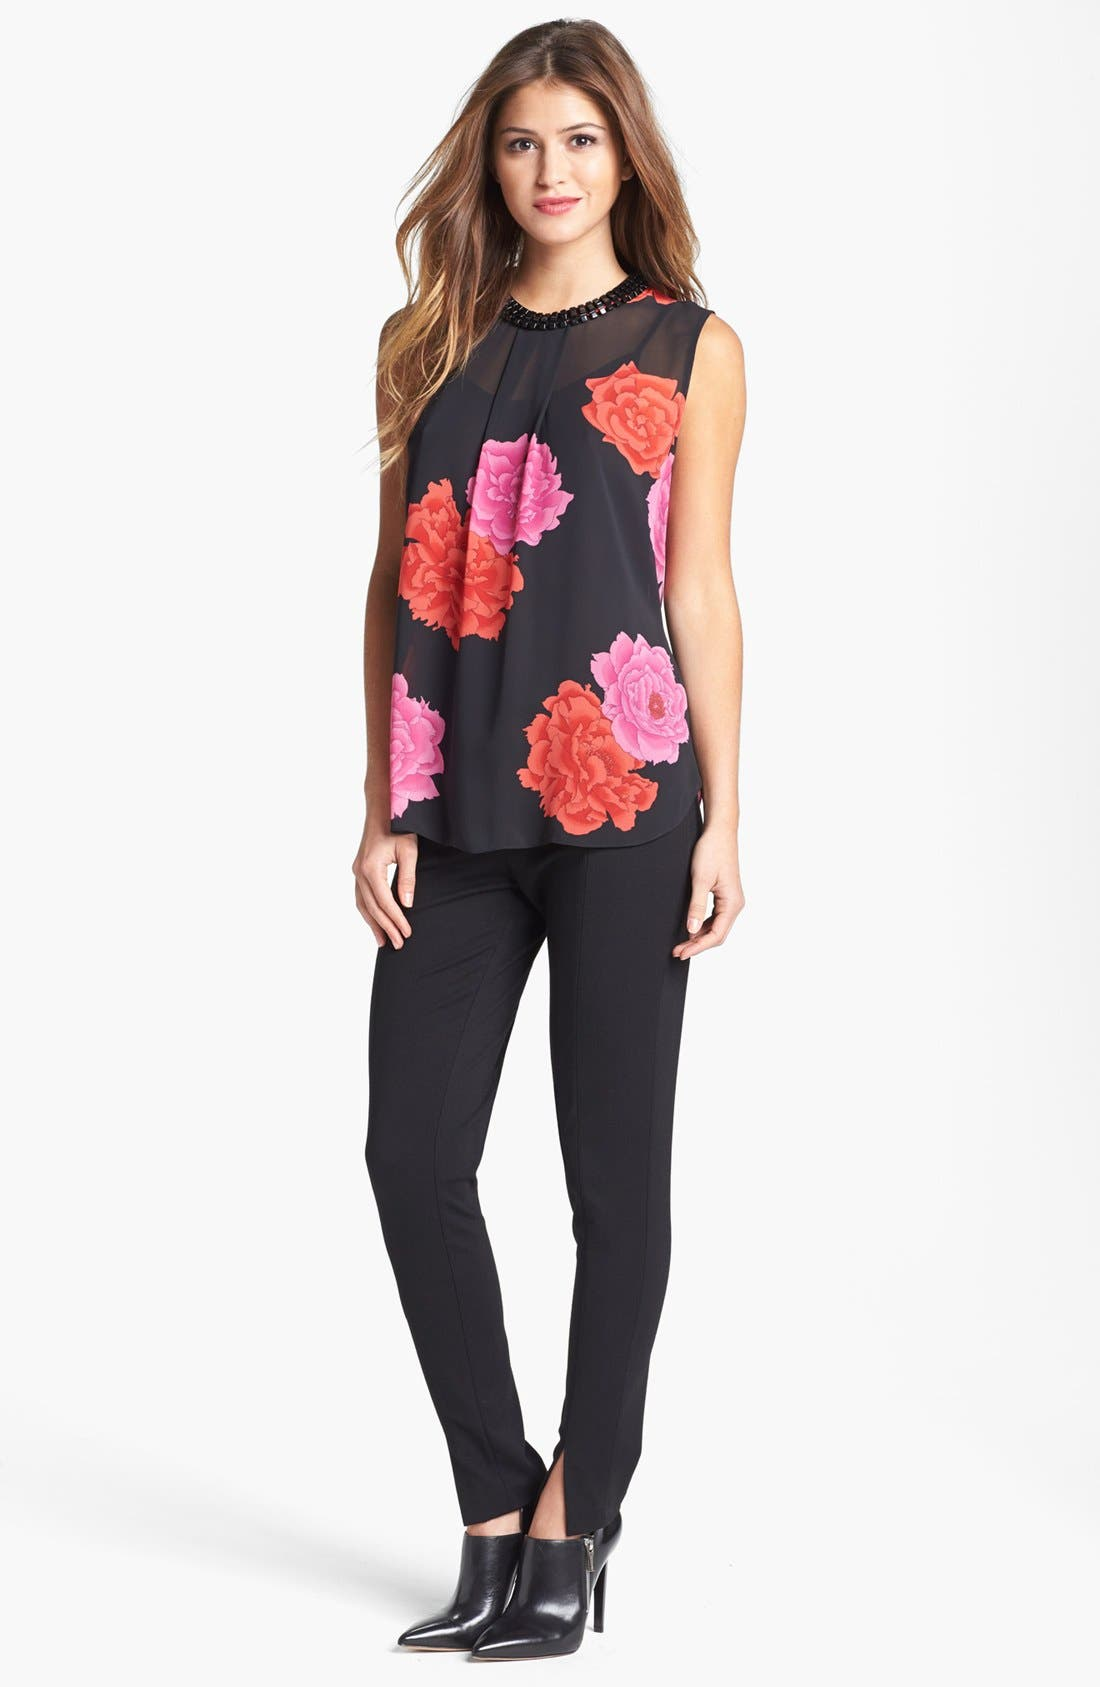 Main Image - Vince Camuto 'Peonies' Embellished Blouse